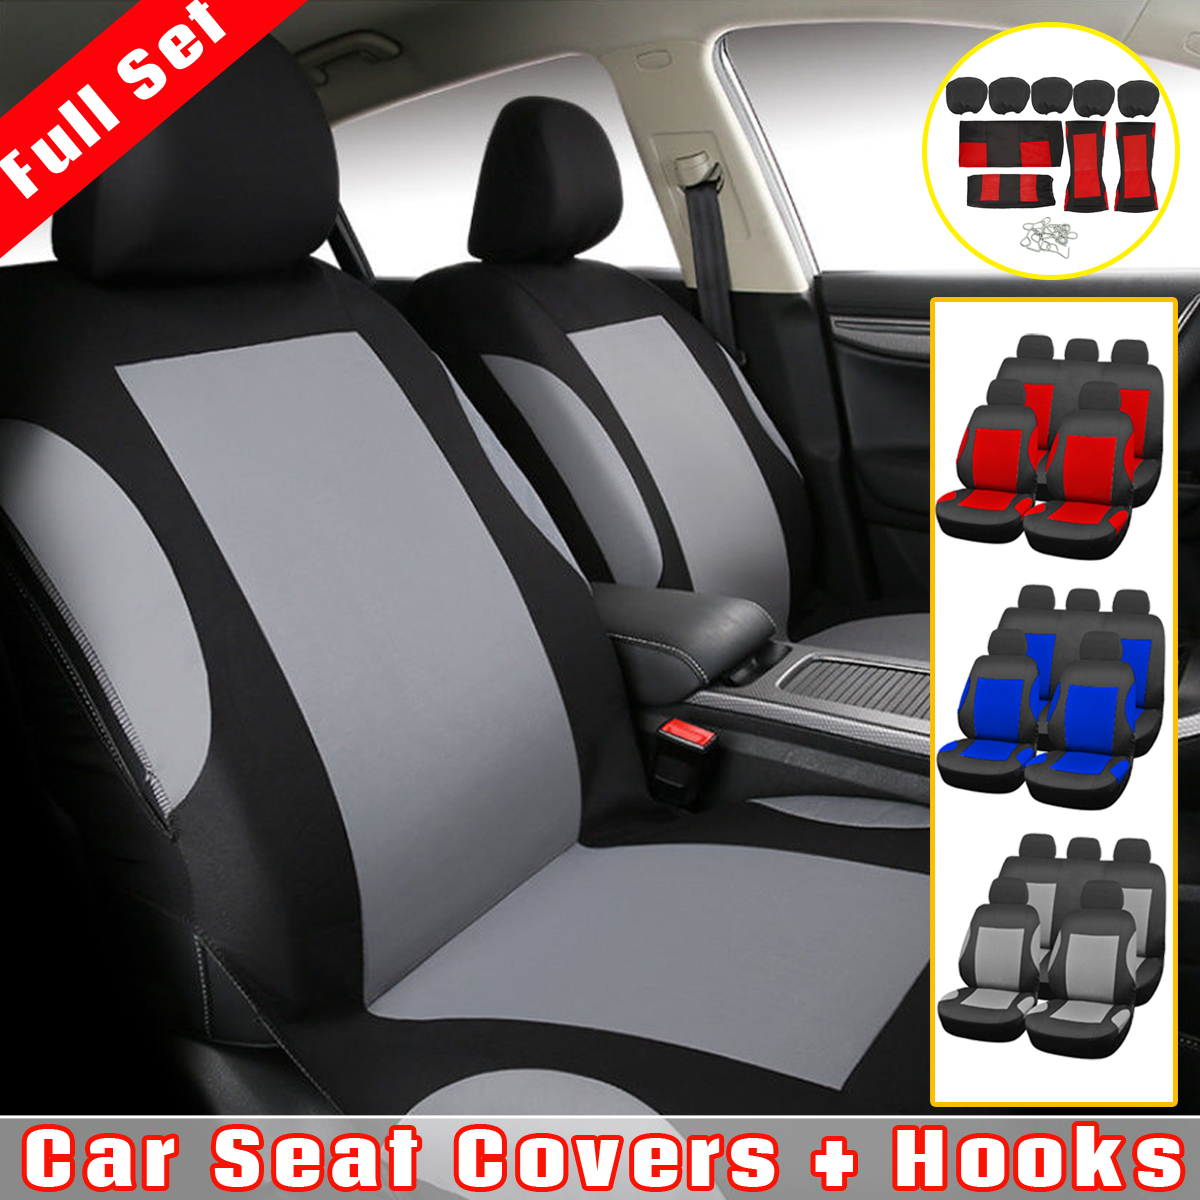 9Pcs/set Universal Full Set Car Seat Cover + Hooks For Auto Front + Rear Seat Headrests